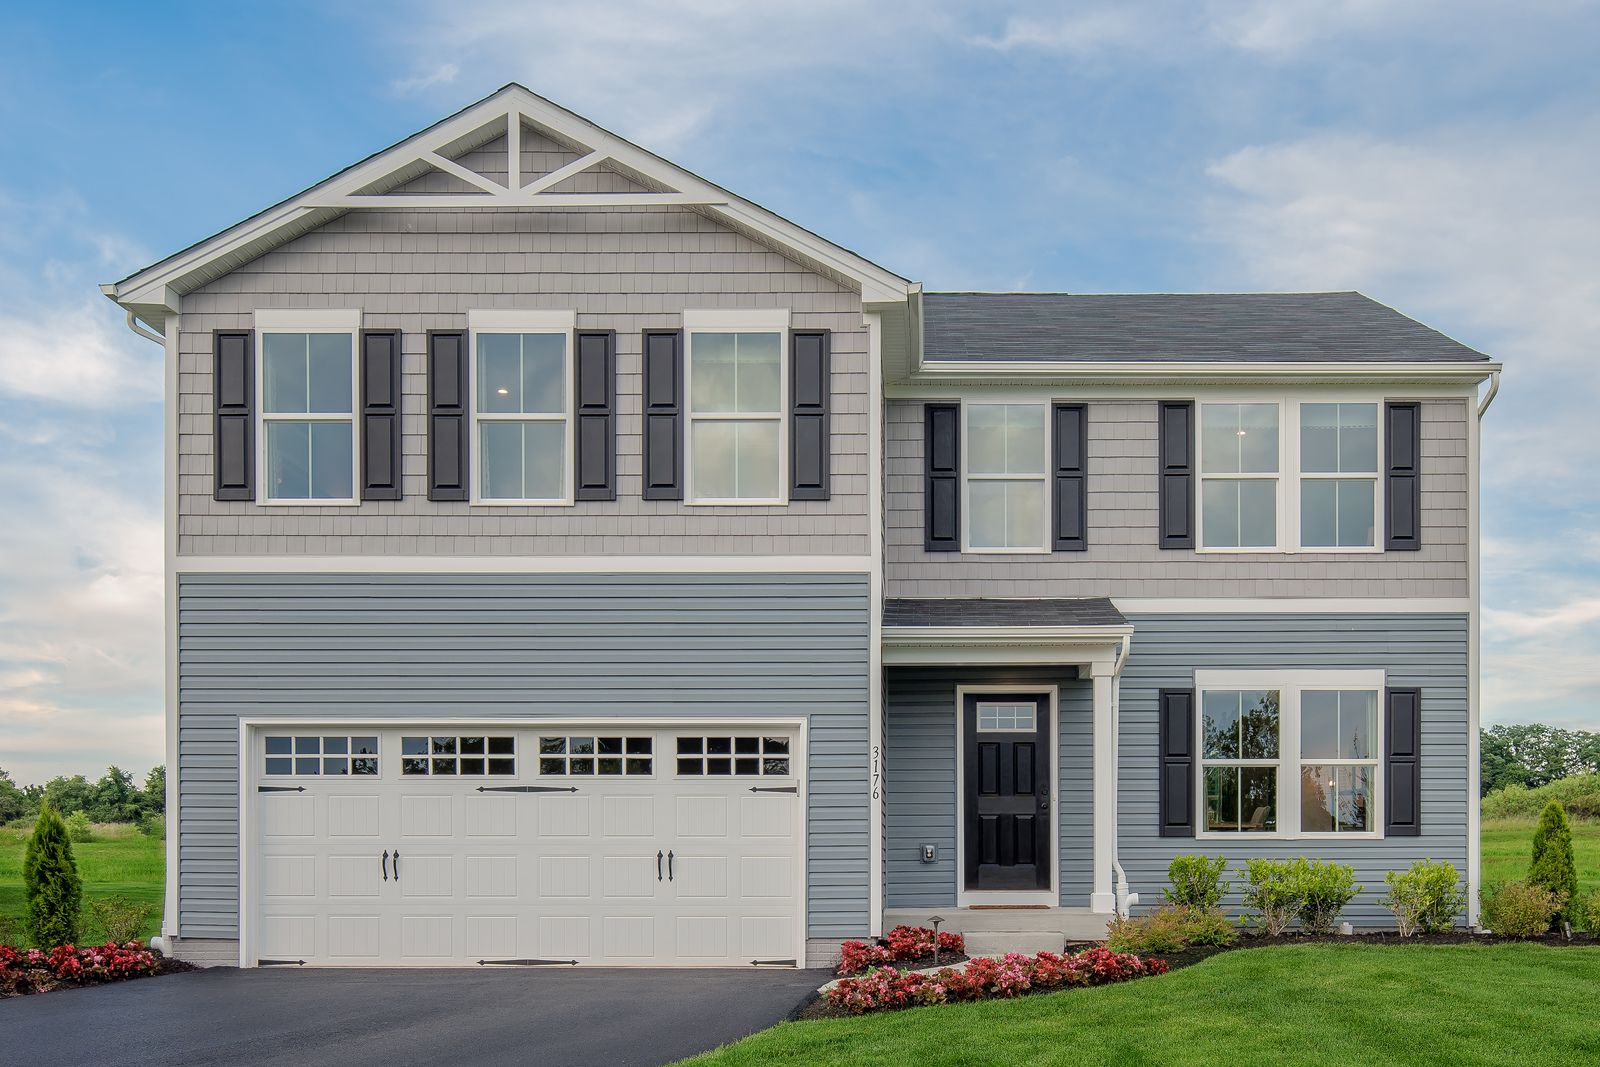 HOPYARD FARM - AFFORDABLE HOMES IN THIS AMENITY-FILLED COMMUNITY!:Affordable single-family homes in an amenity-filled community with usable, private backyards - from thelow $300s!Click here to schedule your visit today.